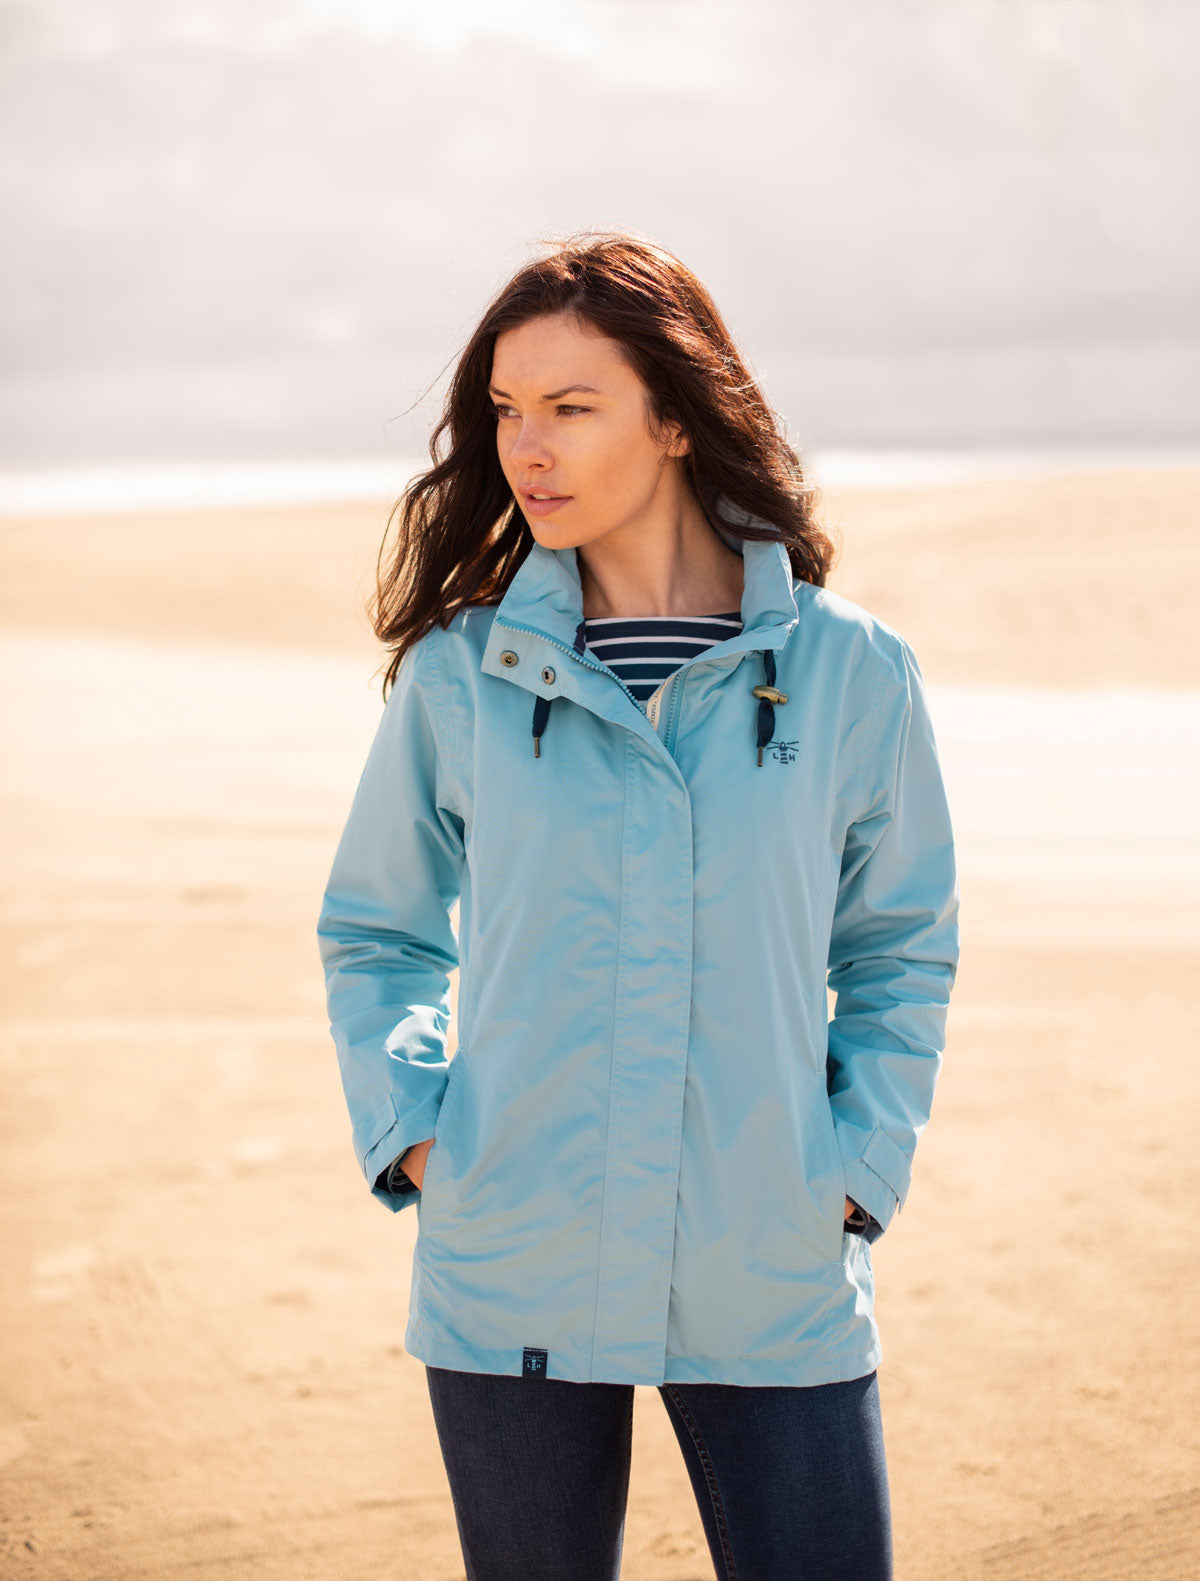 Beachcomber Jacket - Dusk Blue - Lifestyle